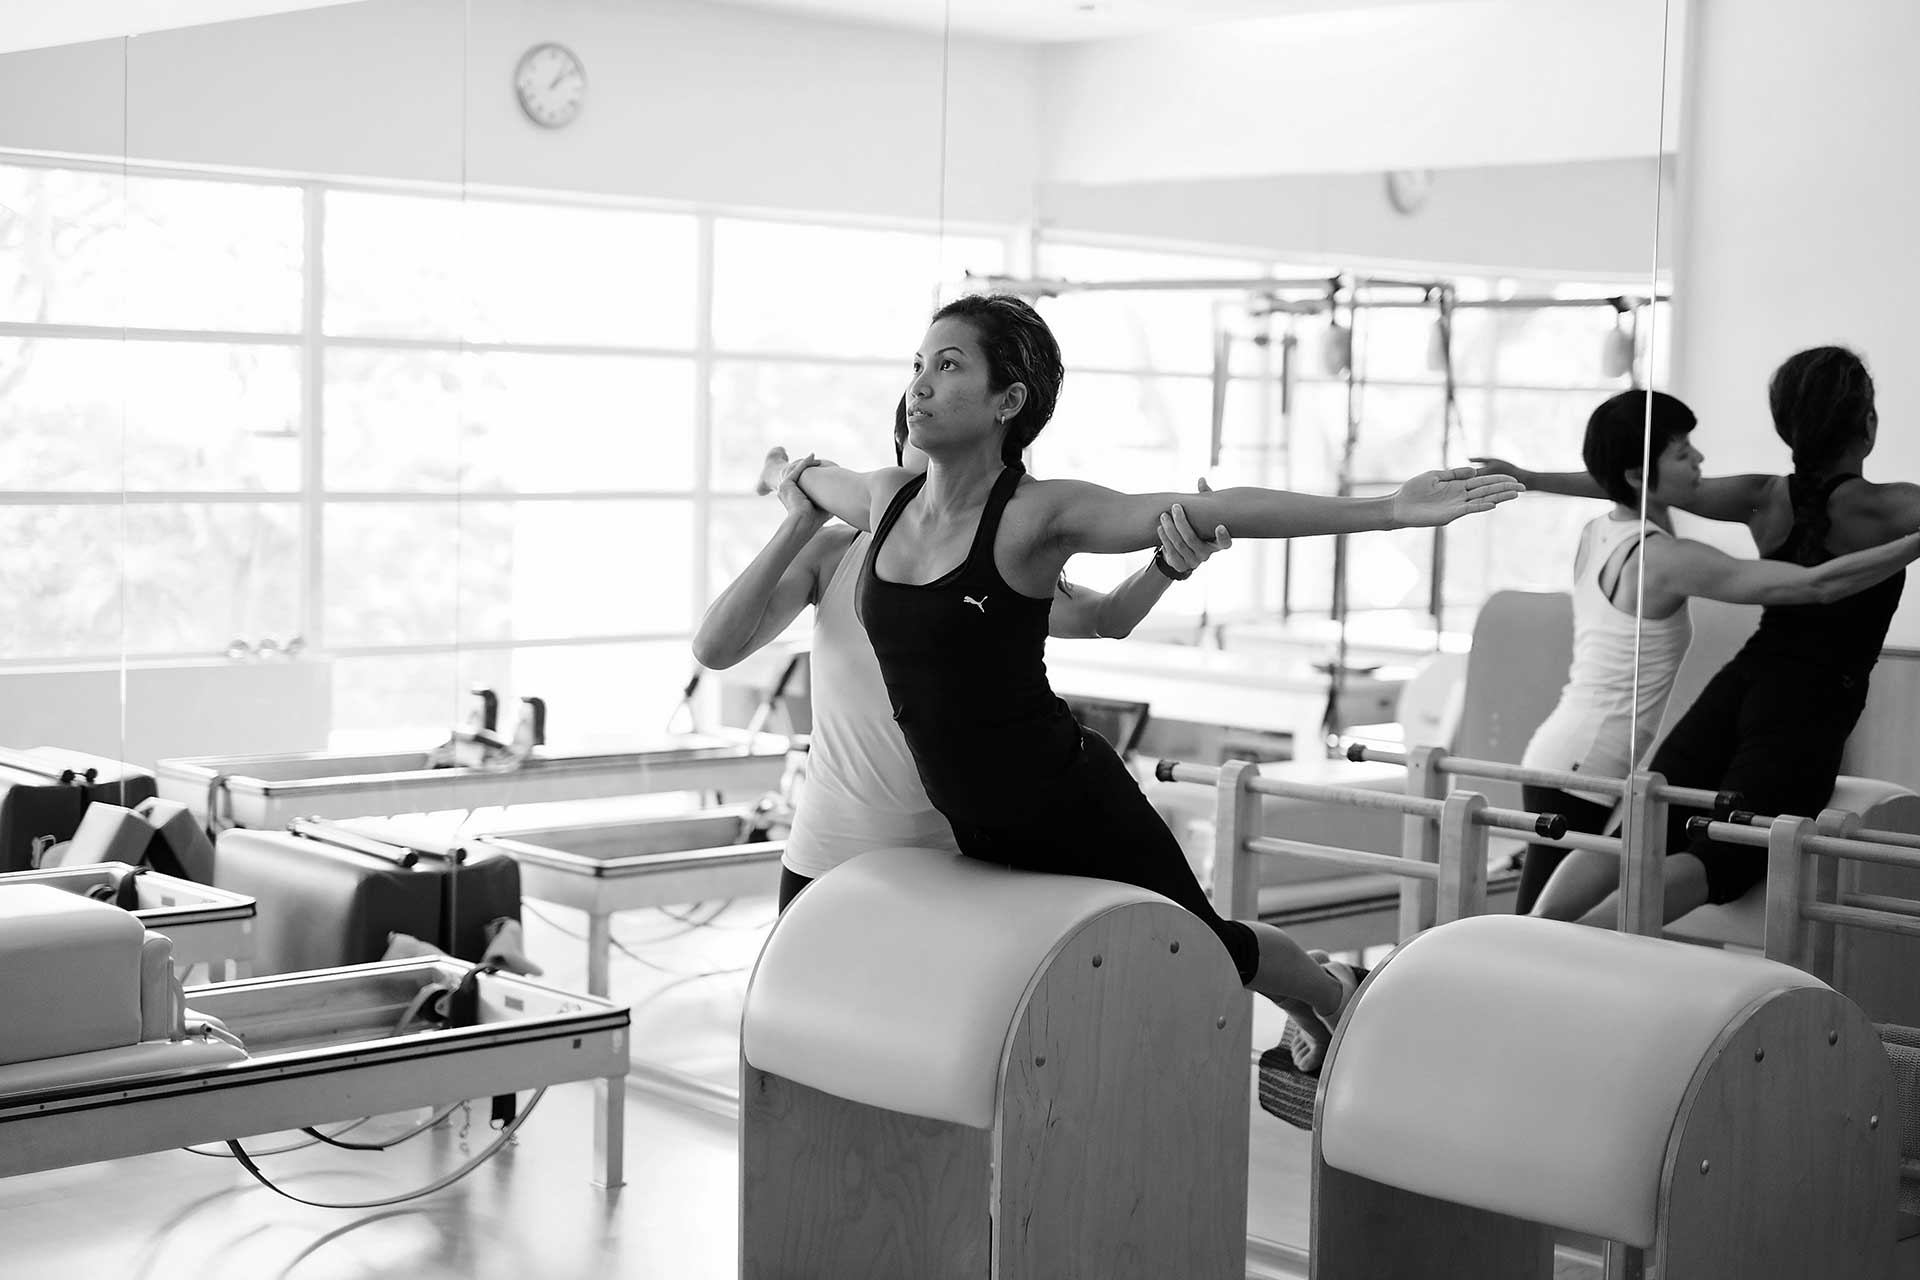 pilates studio in singapore - slider 9